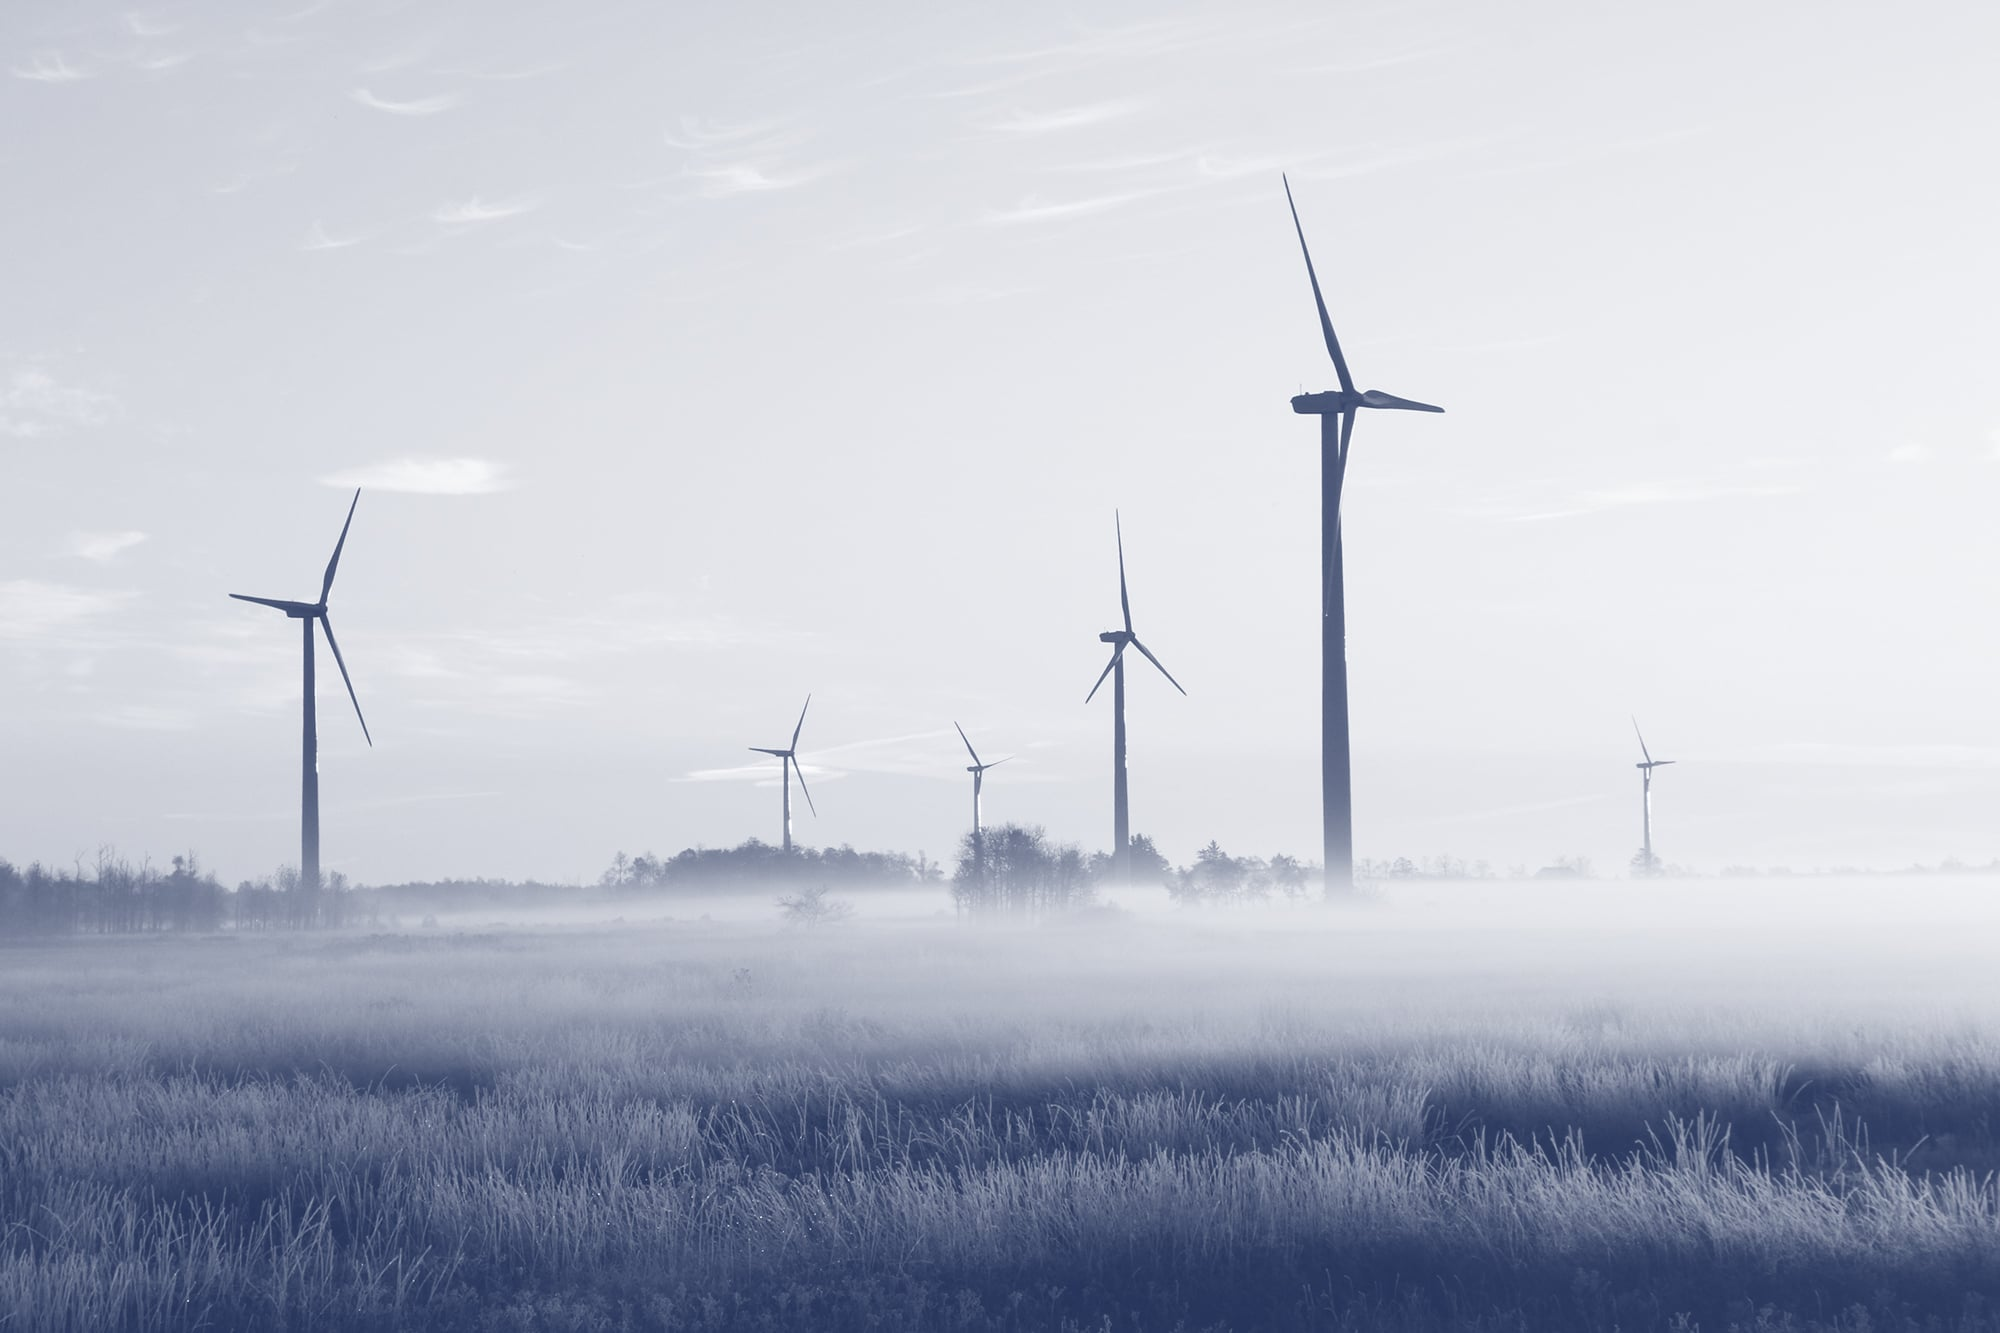 a group of wind turbines in a field